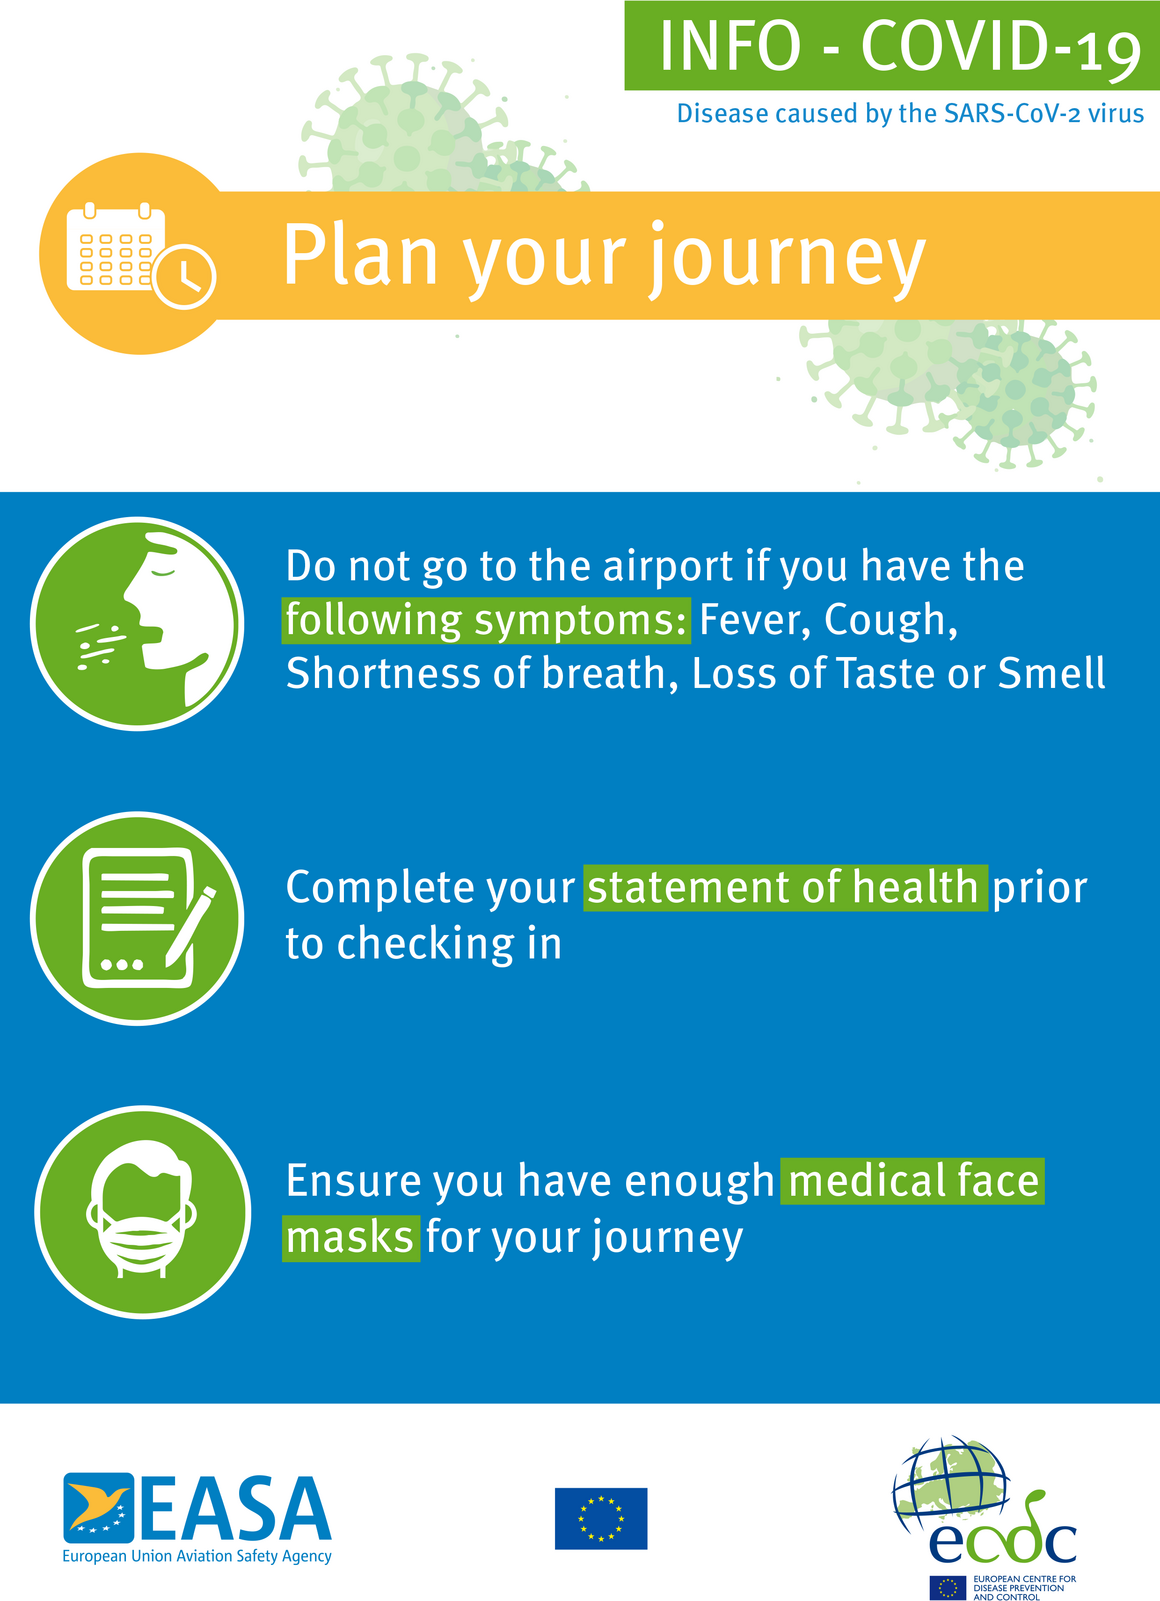 Poster: Plan your journey (blue background)